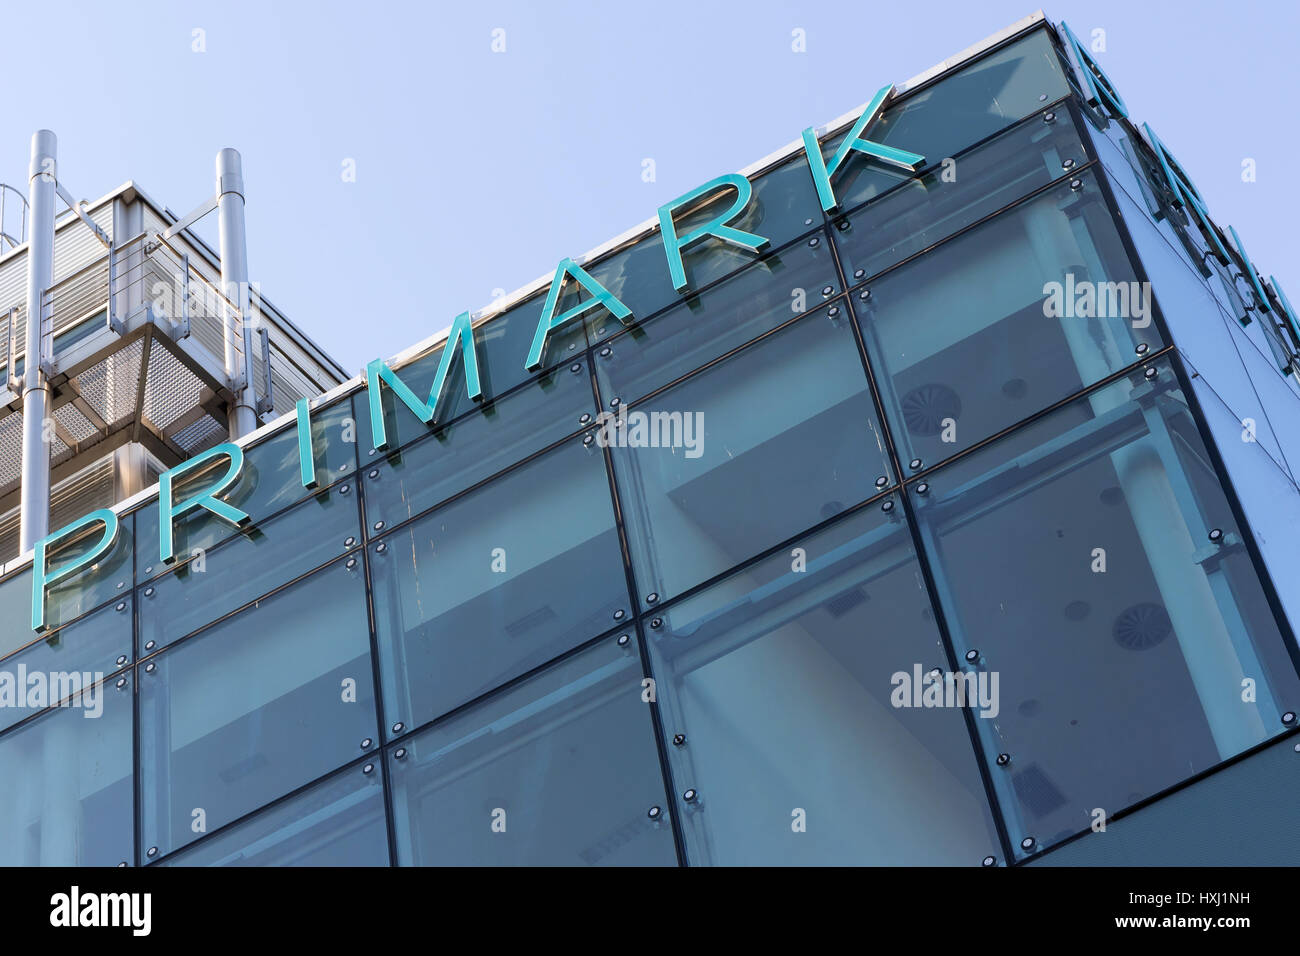 Lettering at Primark store in Cologne/ Germany. Primark is an Irish clothing retailer and a subsidiary of Associated - Stock Image